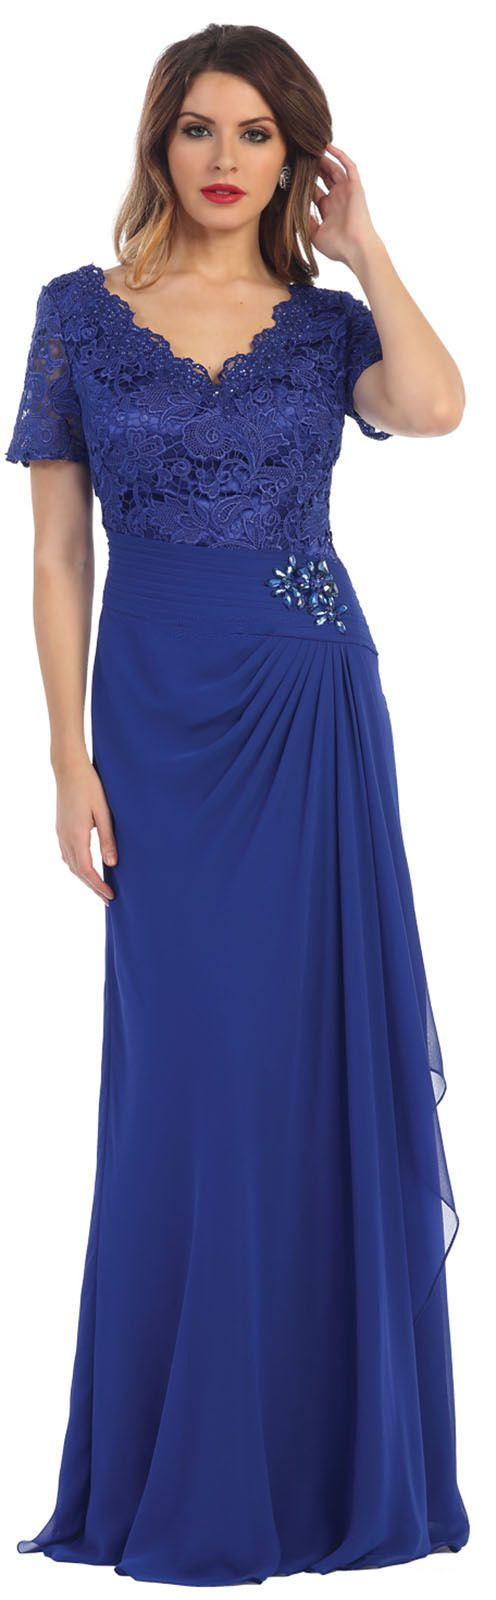 May Queen Beautiful Short Sleeve Mother Of The Bride Dress Walmart Com Walmart Com In 2021 Classy Long Dress Plus Size Formal Dresses Evening Gowns Formal [ 1600 x 496 Pixel ]